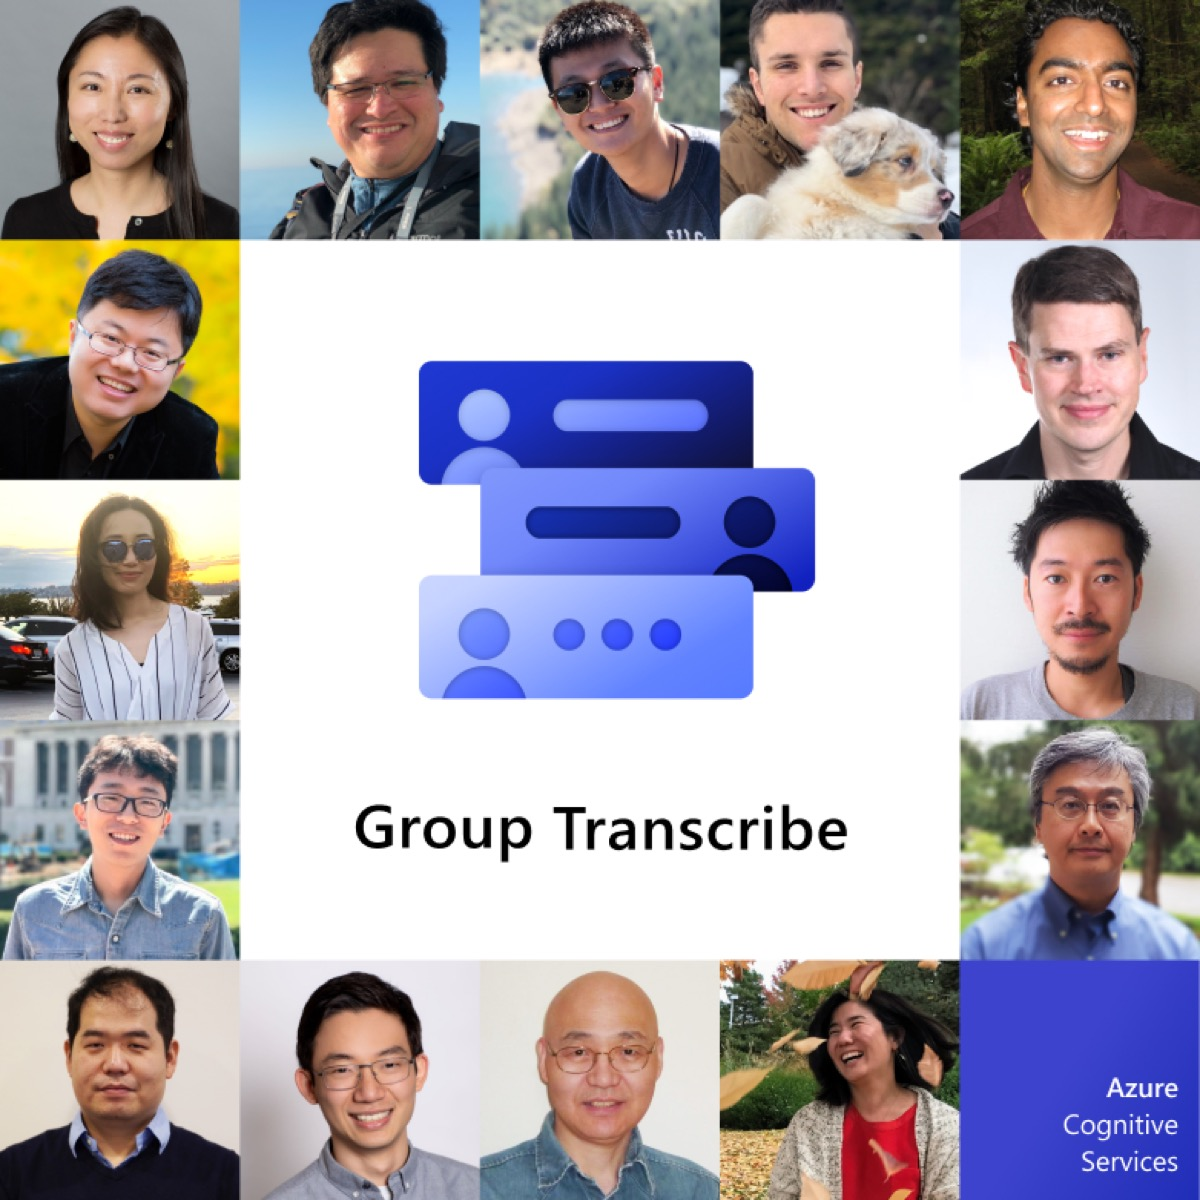 Photo of Microsoft Group Transcribe surrounded by photos of people ready to use the app.